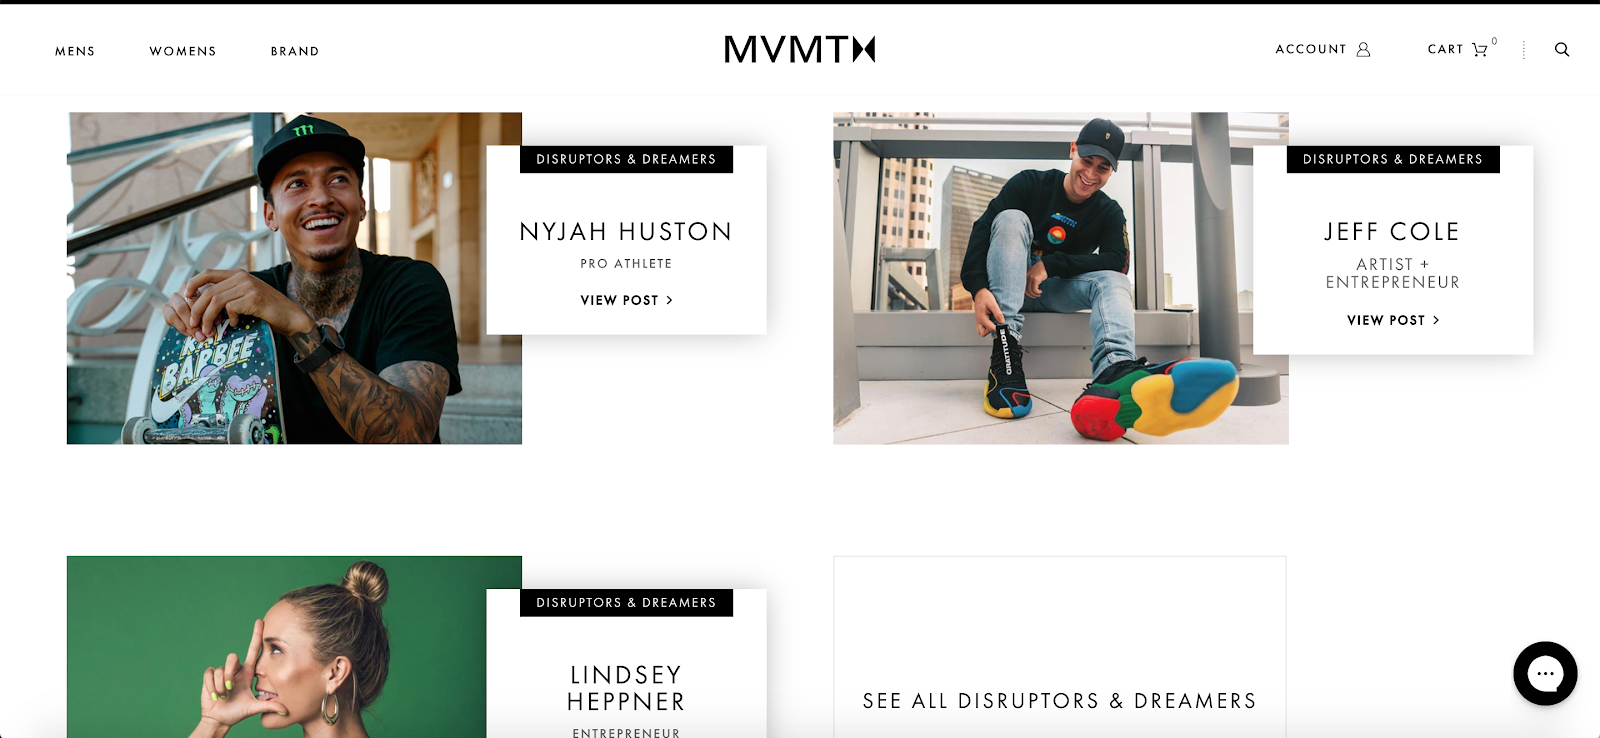 MVMT Influencers (DTC Growth)